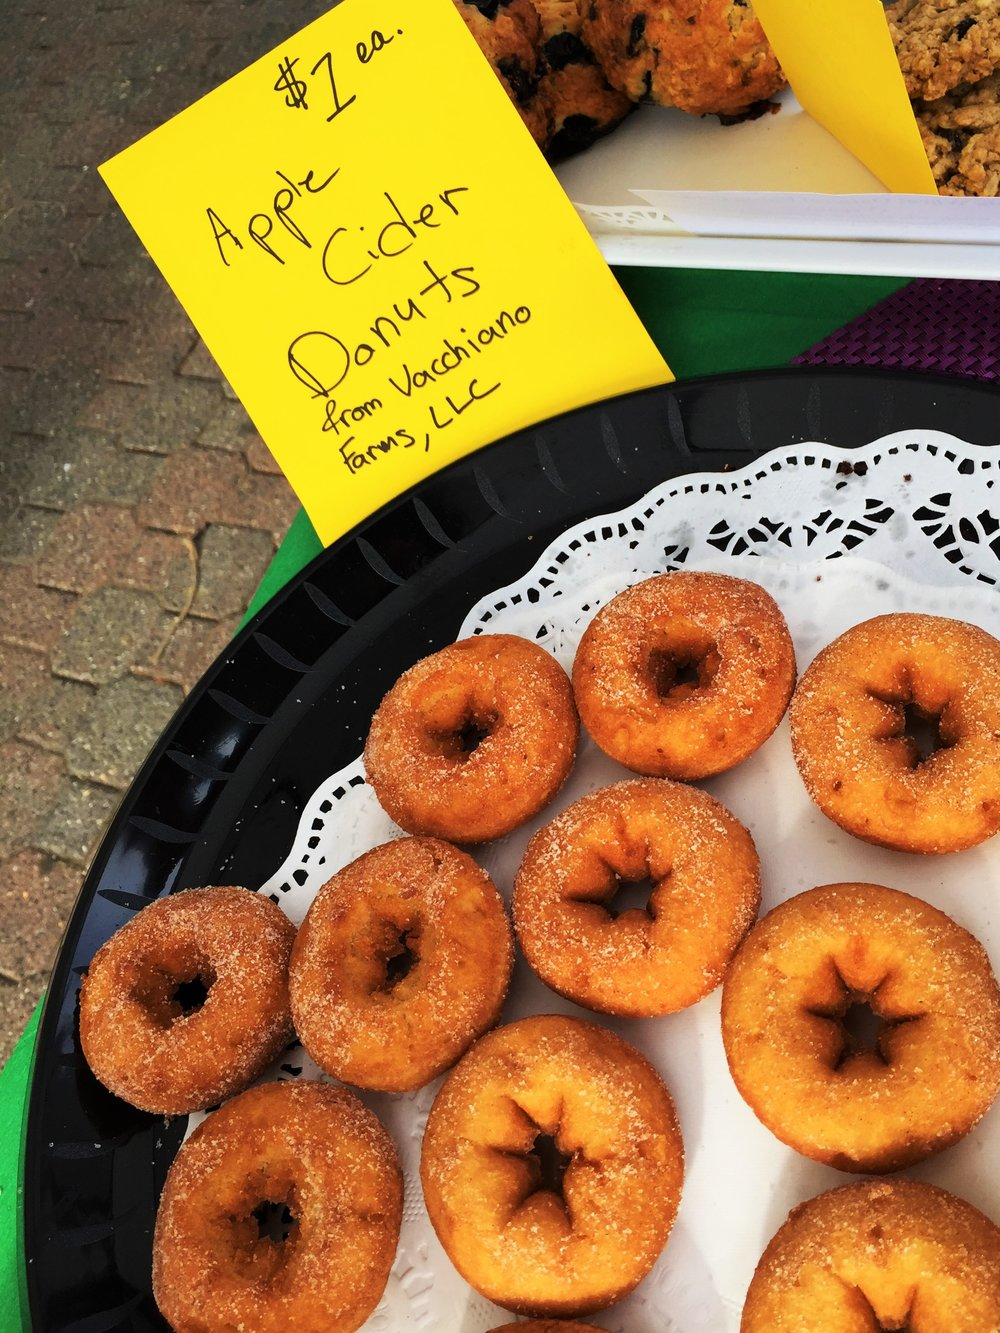 2017 - Apple cider doughnuts generously donated by Vacchiano Farm